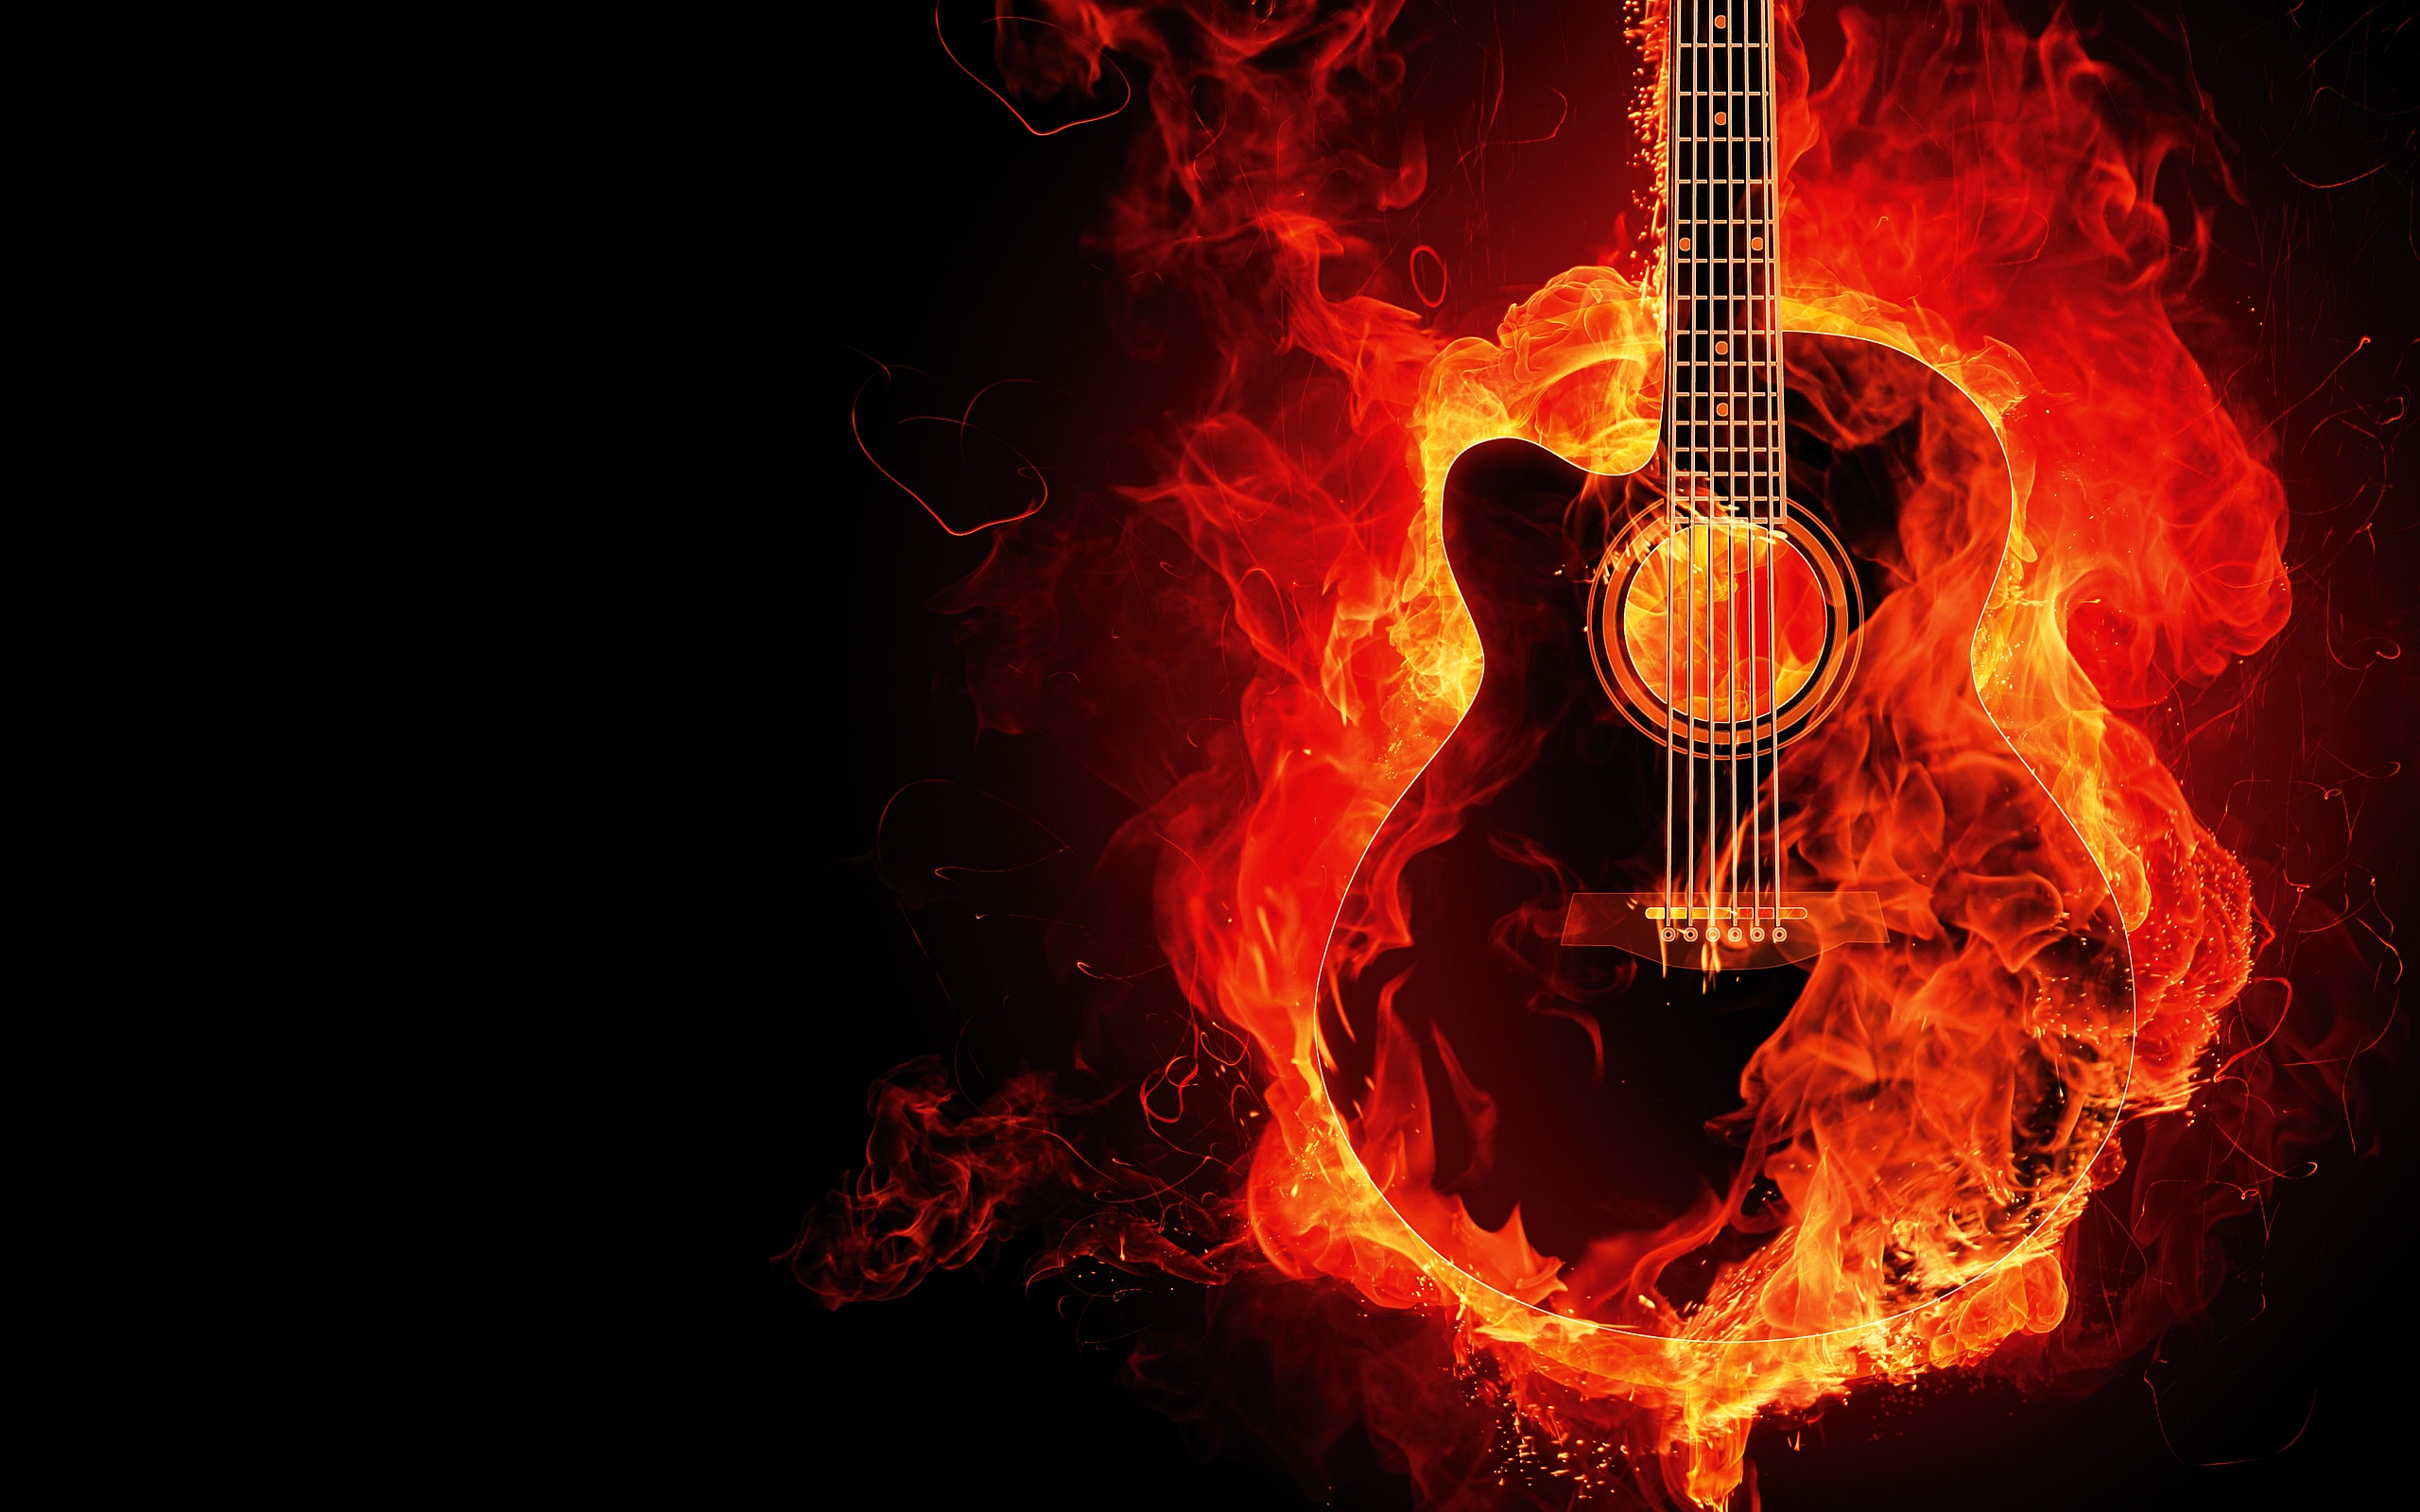 Awesome Guitar Fire Wallpaper HD 2818 Wallpaper with 2560x1600 2560x1600